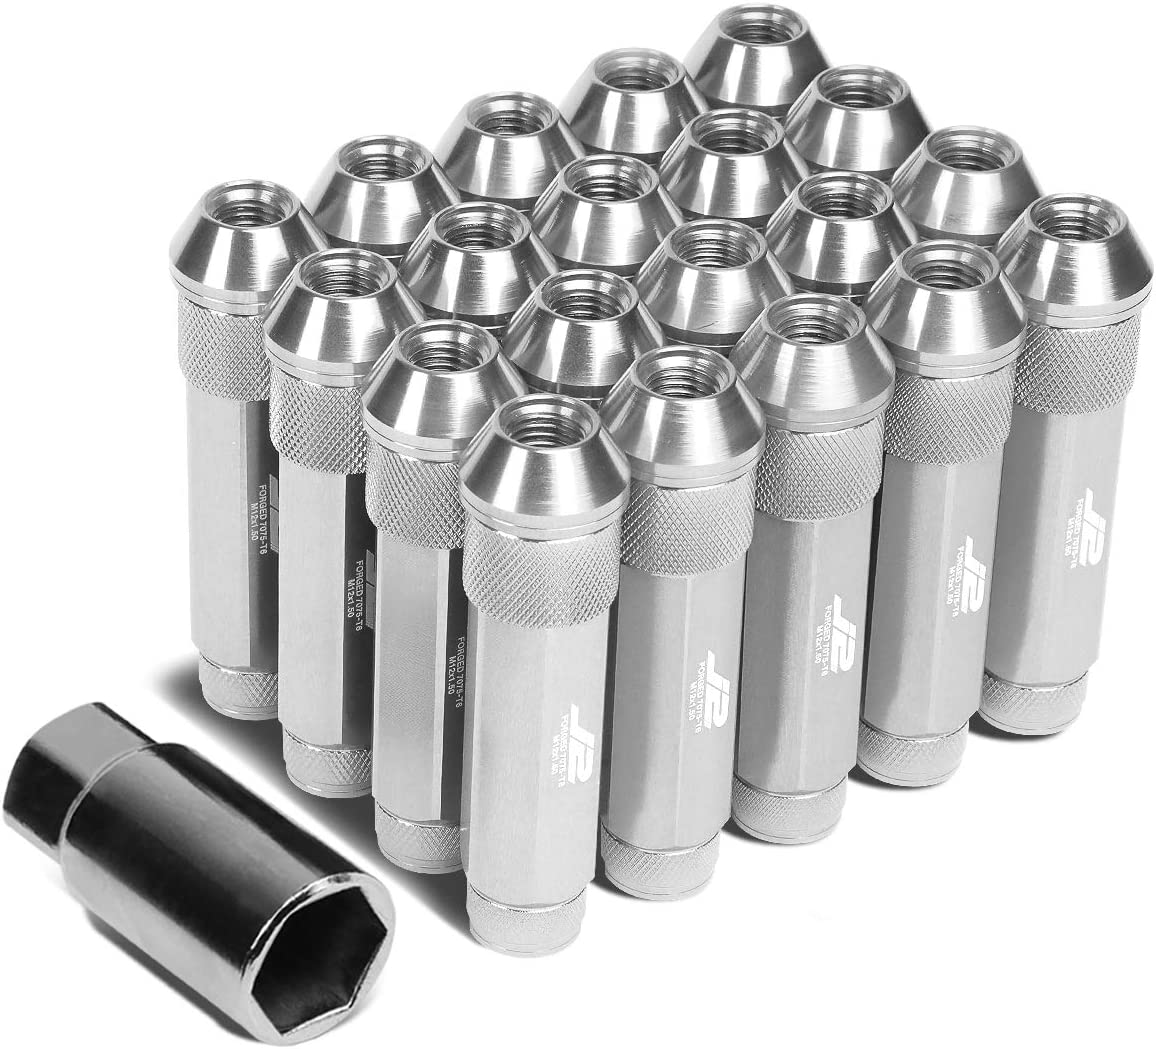 90mm 20x Lug Nut 1x Key J2 Engineering LN-T7-027-15-SL 7075 Aluminum M12 x 1.5 25mm OD